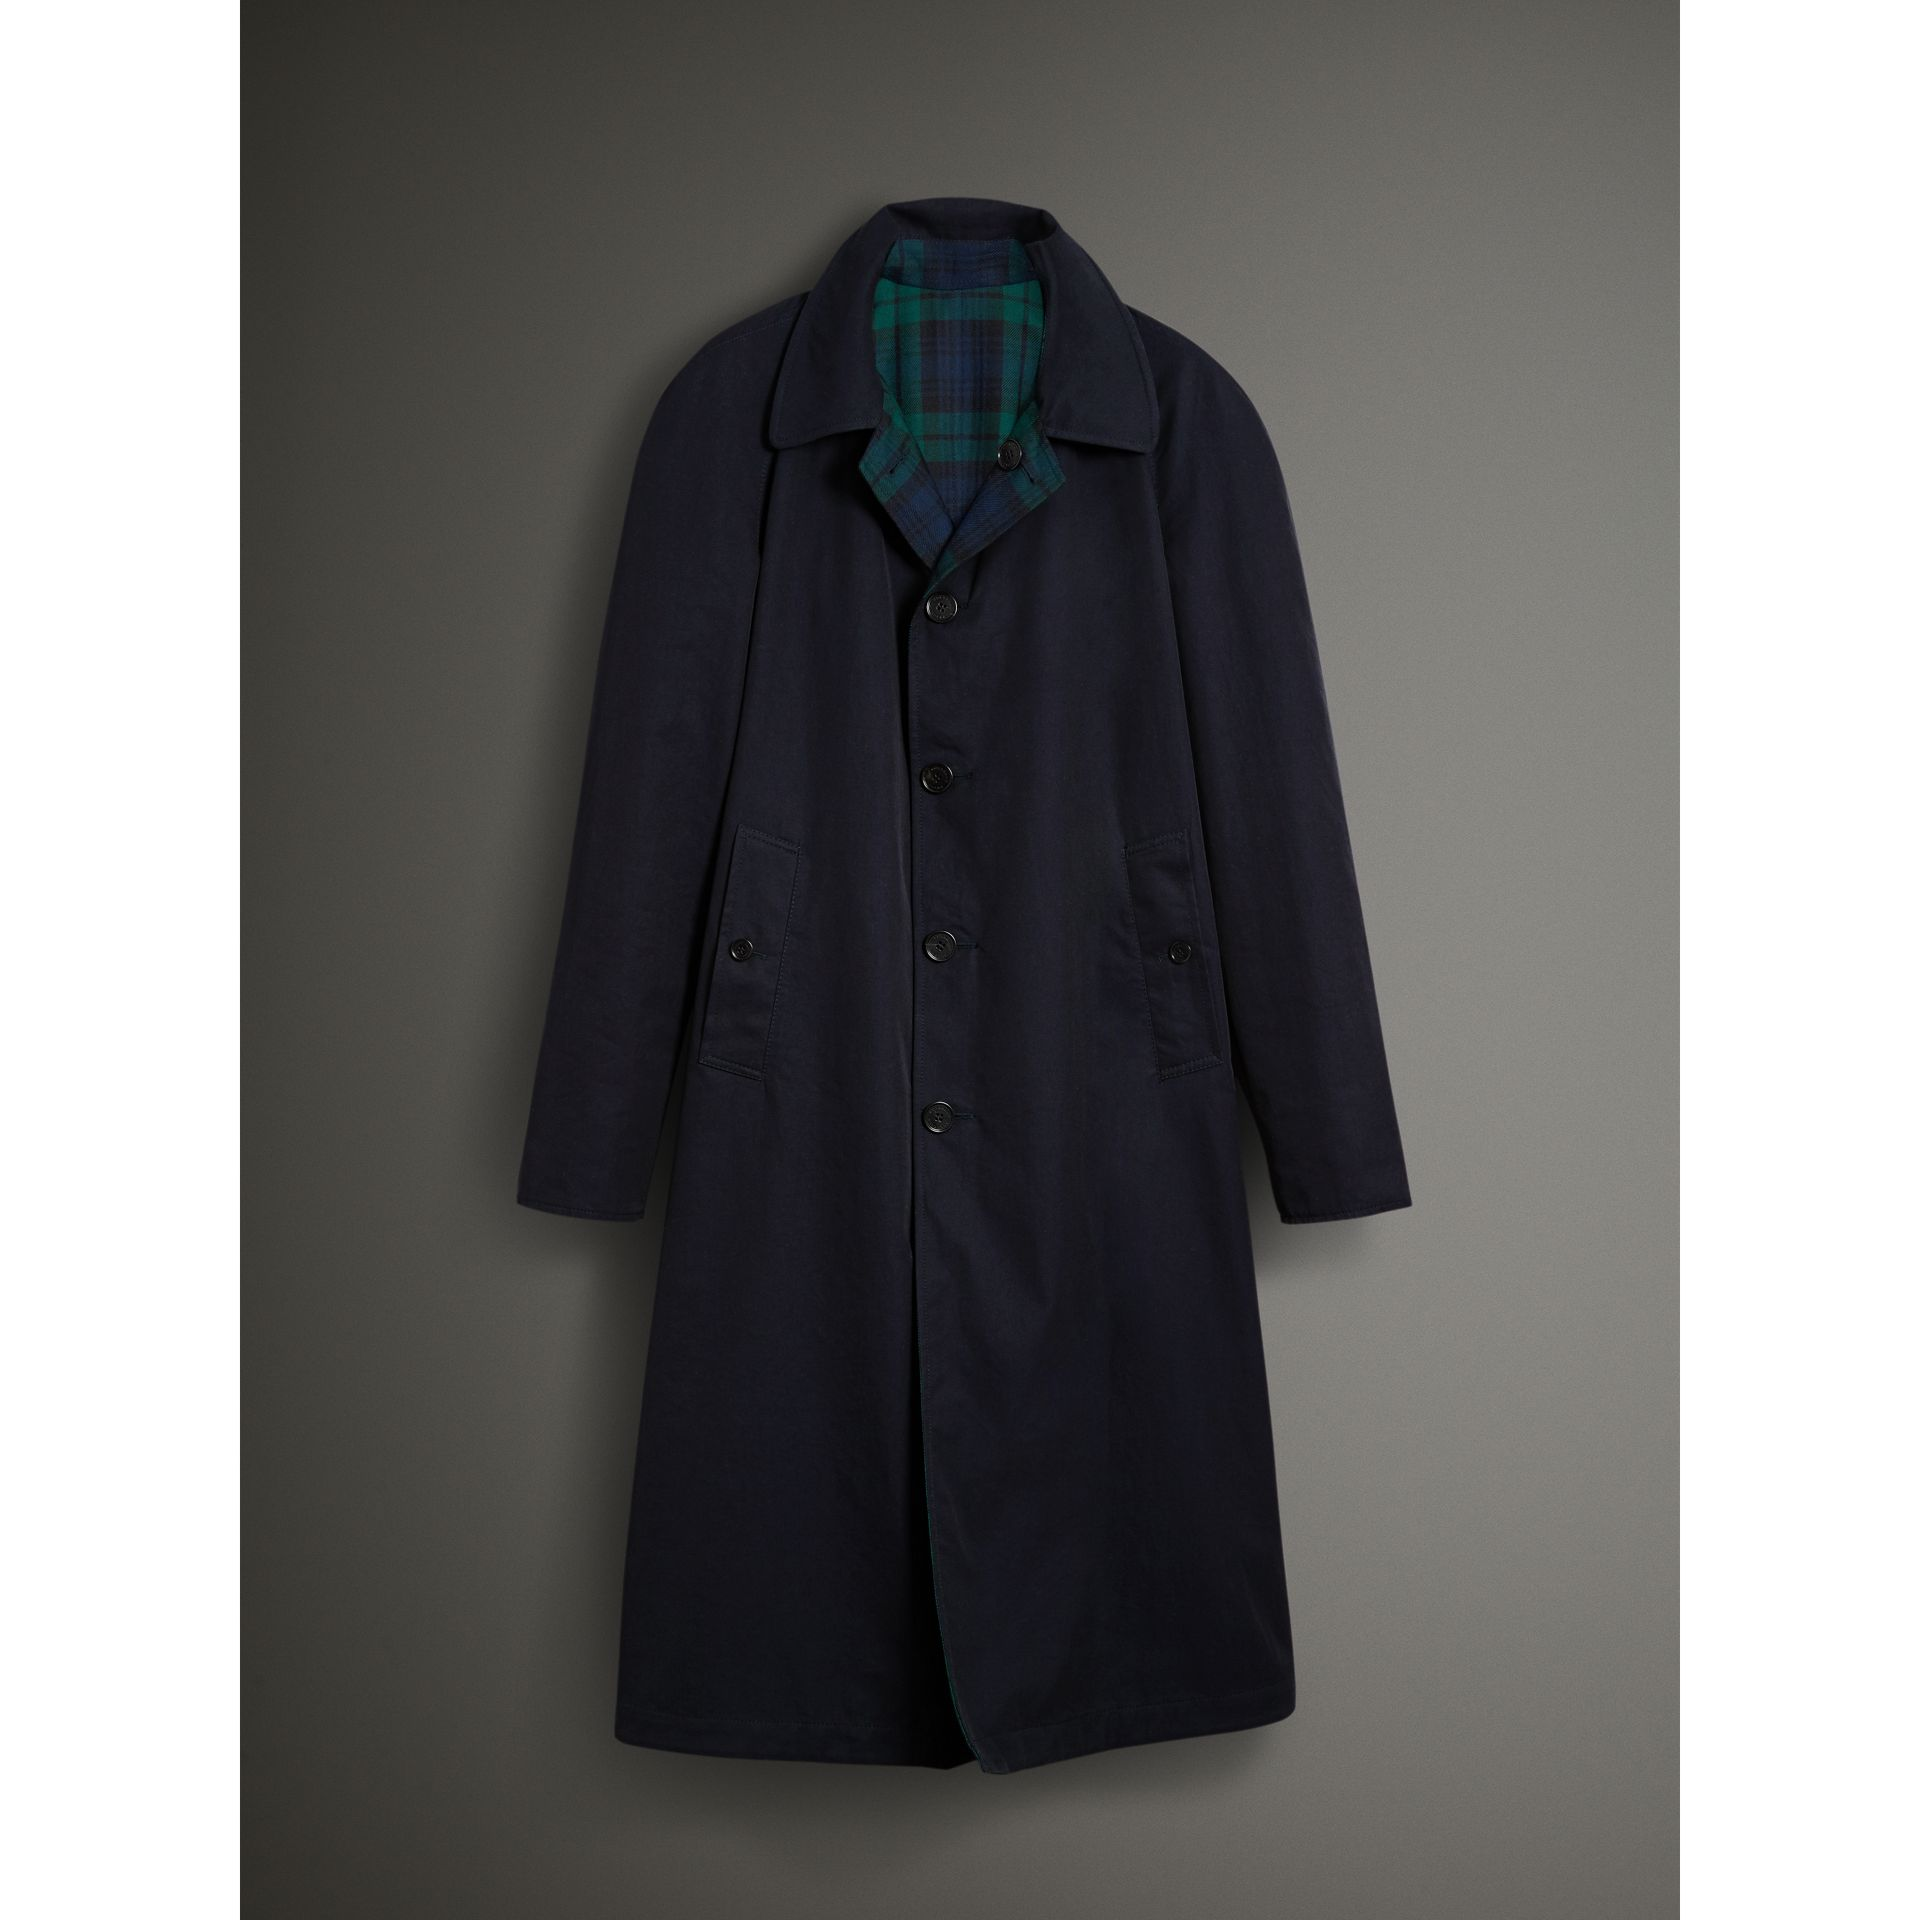 Reversible Tartan Wool and Cotton Gabardine Car Coat in Navy - Men | Burberry Hong Kong - gallery image 9